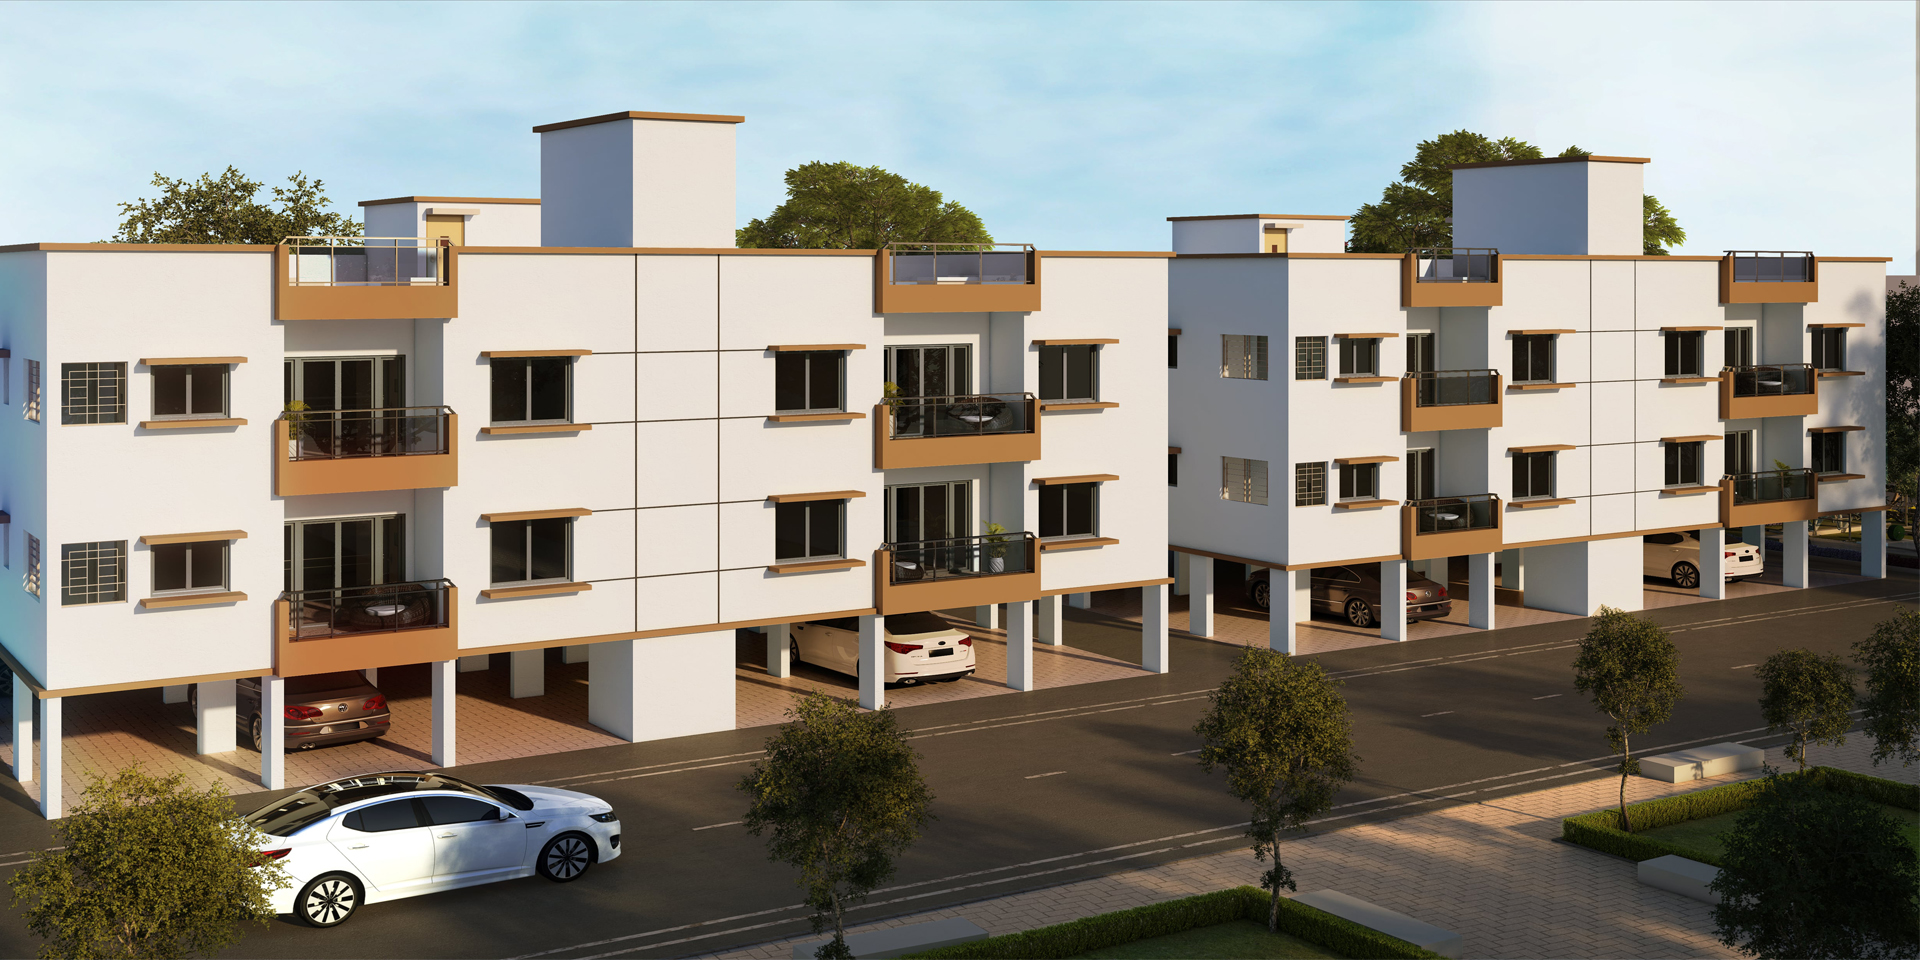 3 BHK Flats for sale in Sholinganallur